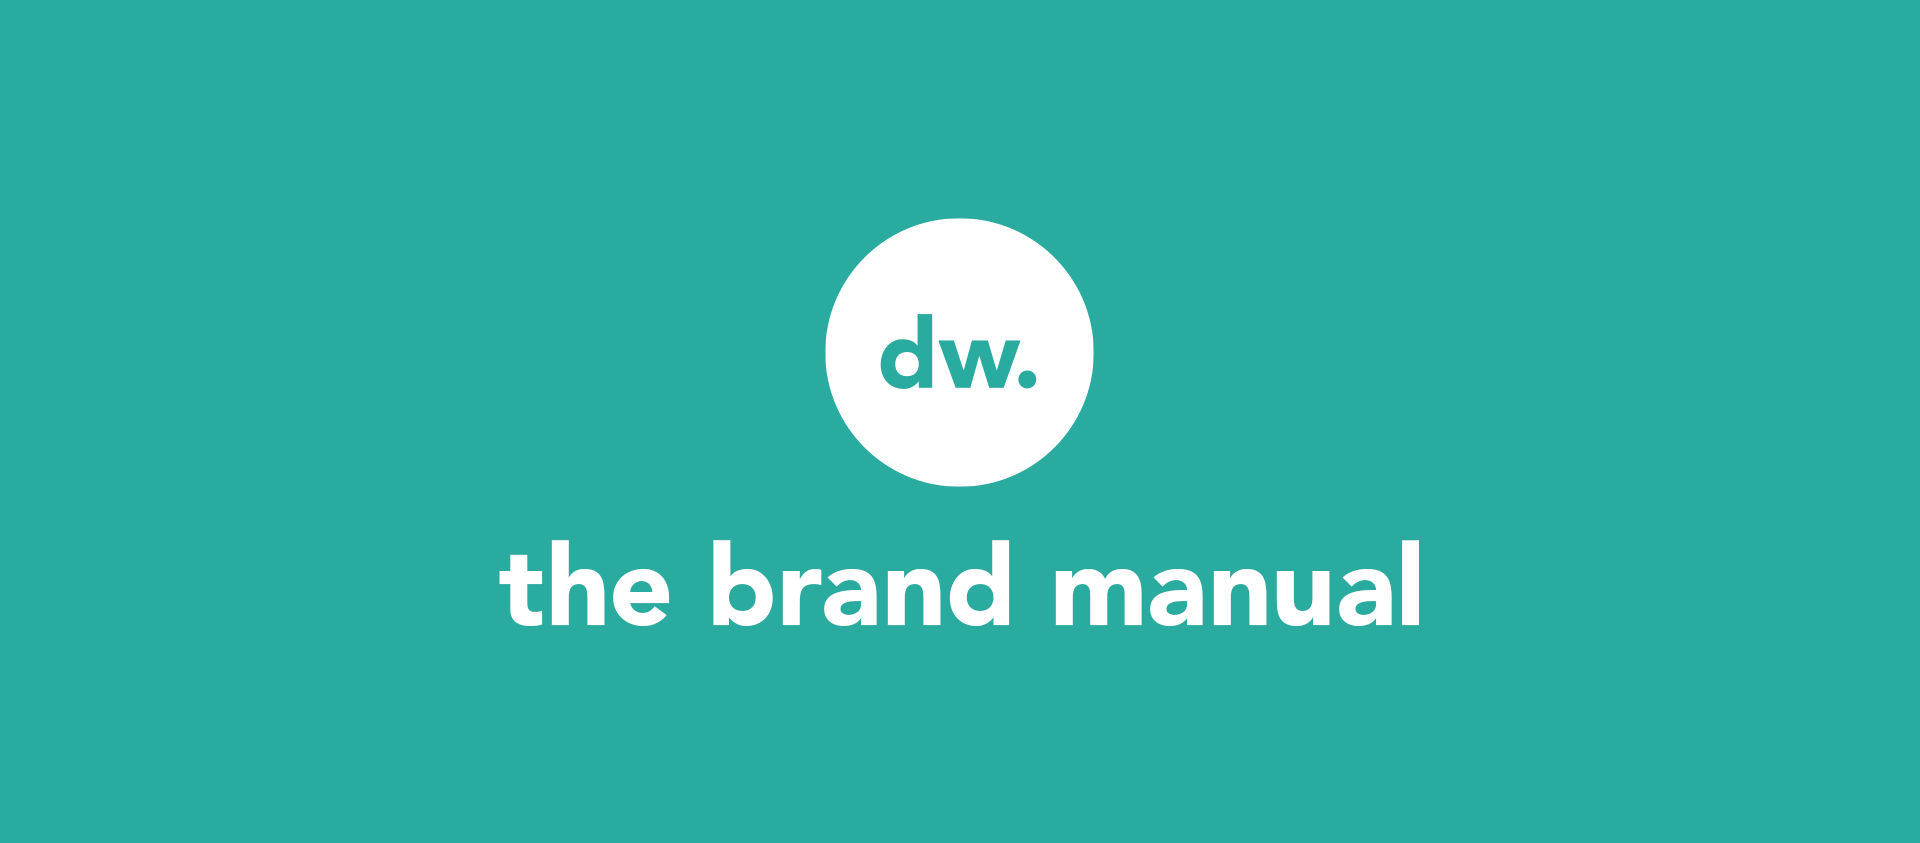 digital works the brand manual.png